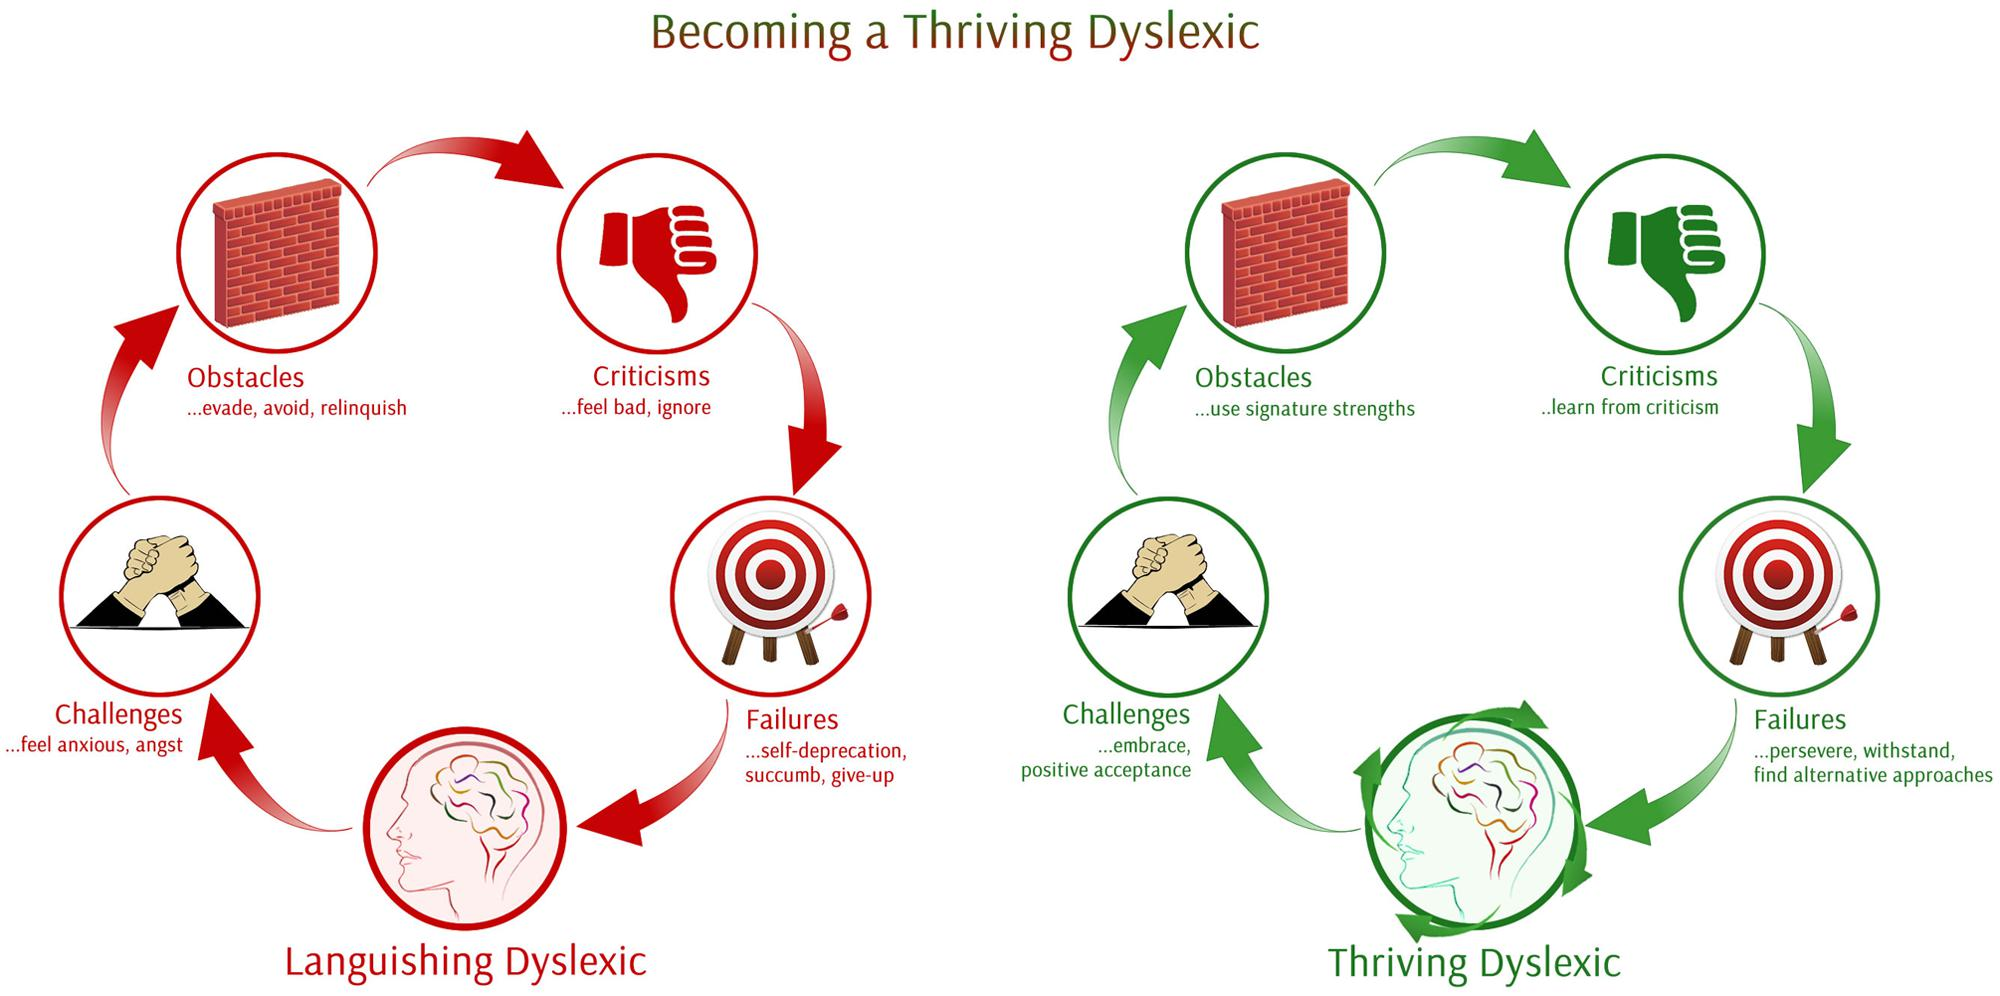 literature review on dyslexia